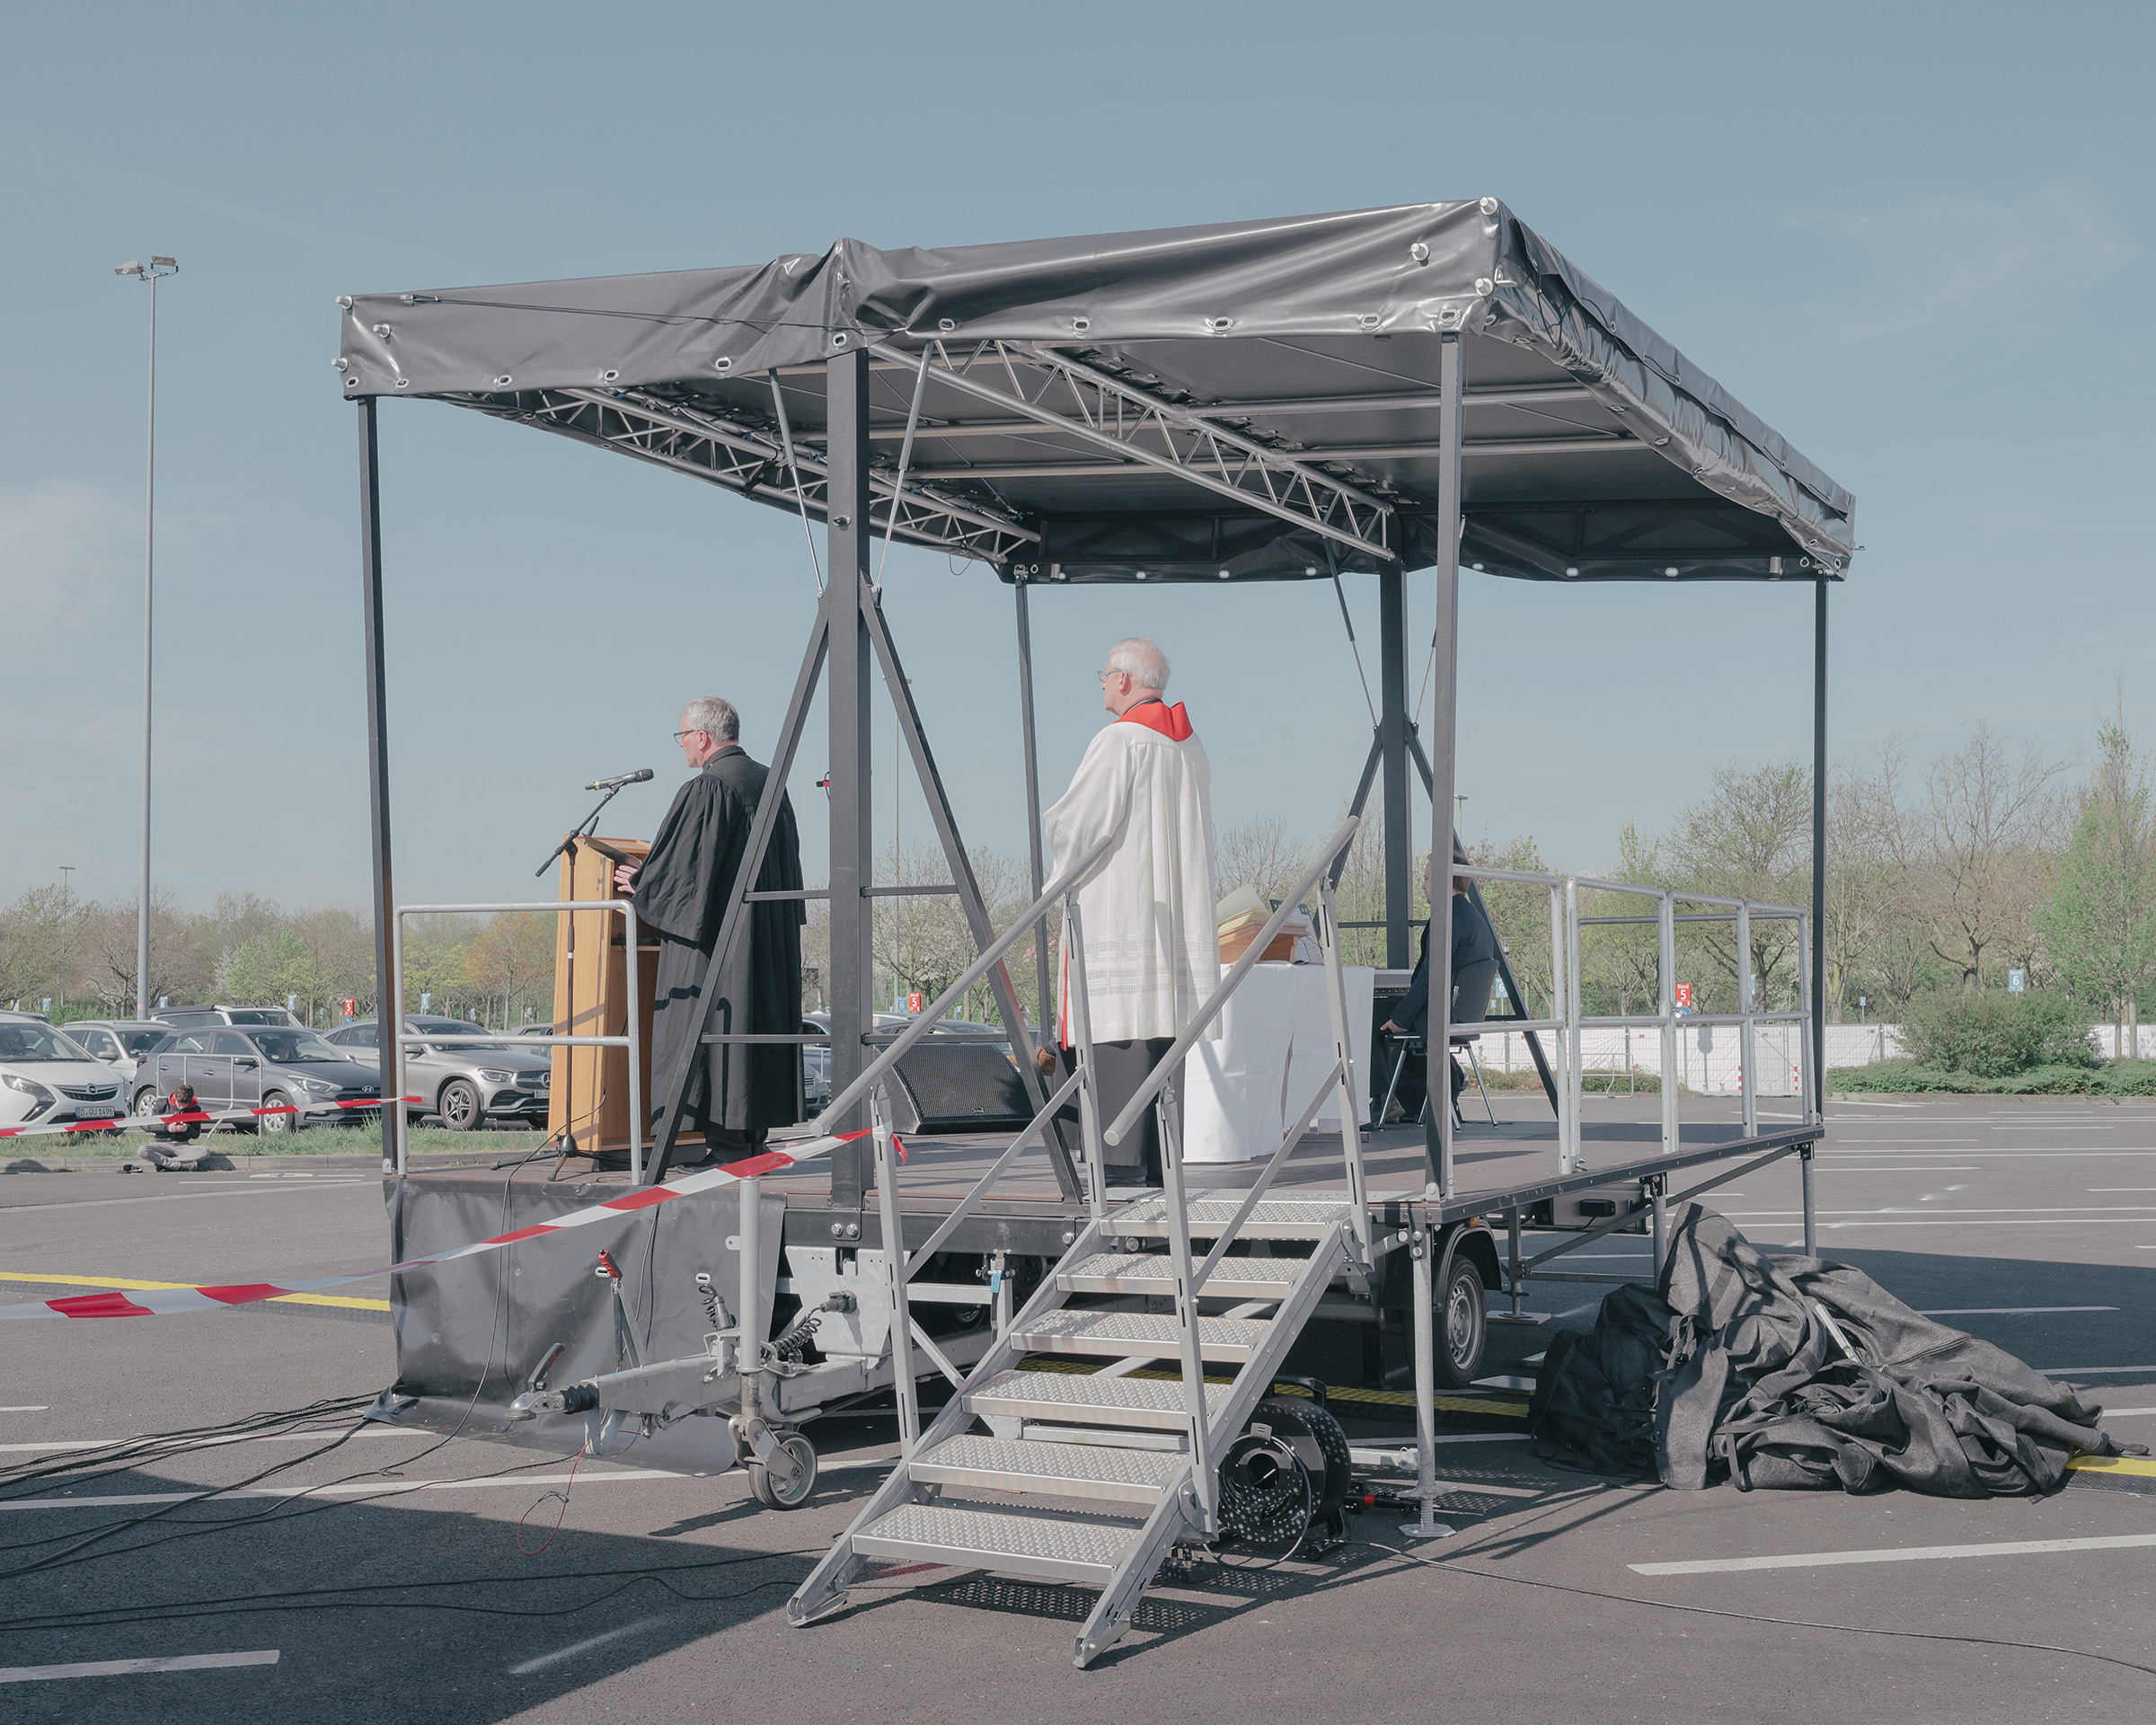 Easter services are held at a drive-in cinema in Düsseldorf on April 10, as church services have been prohibited throughout Germany since March 16.